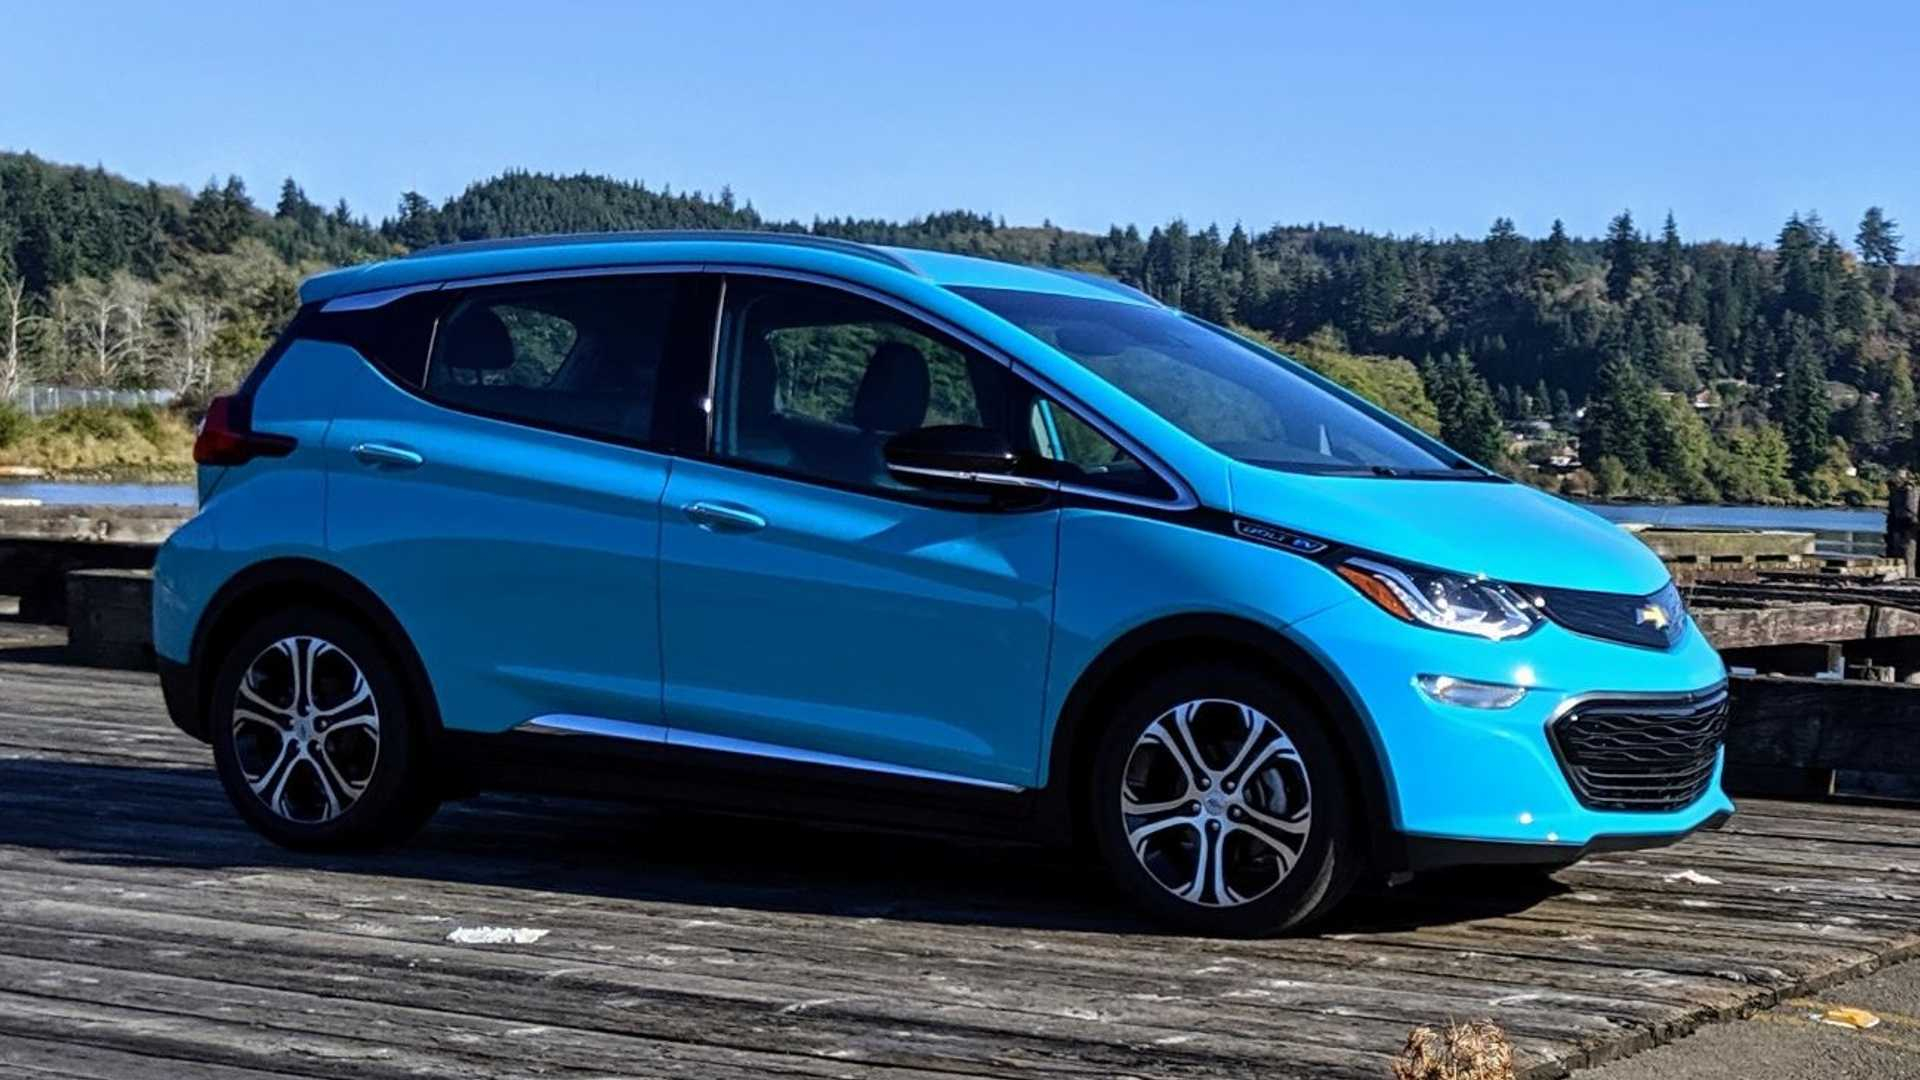 2021 Chevy Bolt: Everything We Know - Interior, Seats, Range 2021 Chevrolet Bolt Ev Brochure, Configurations, Charging